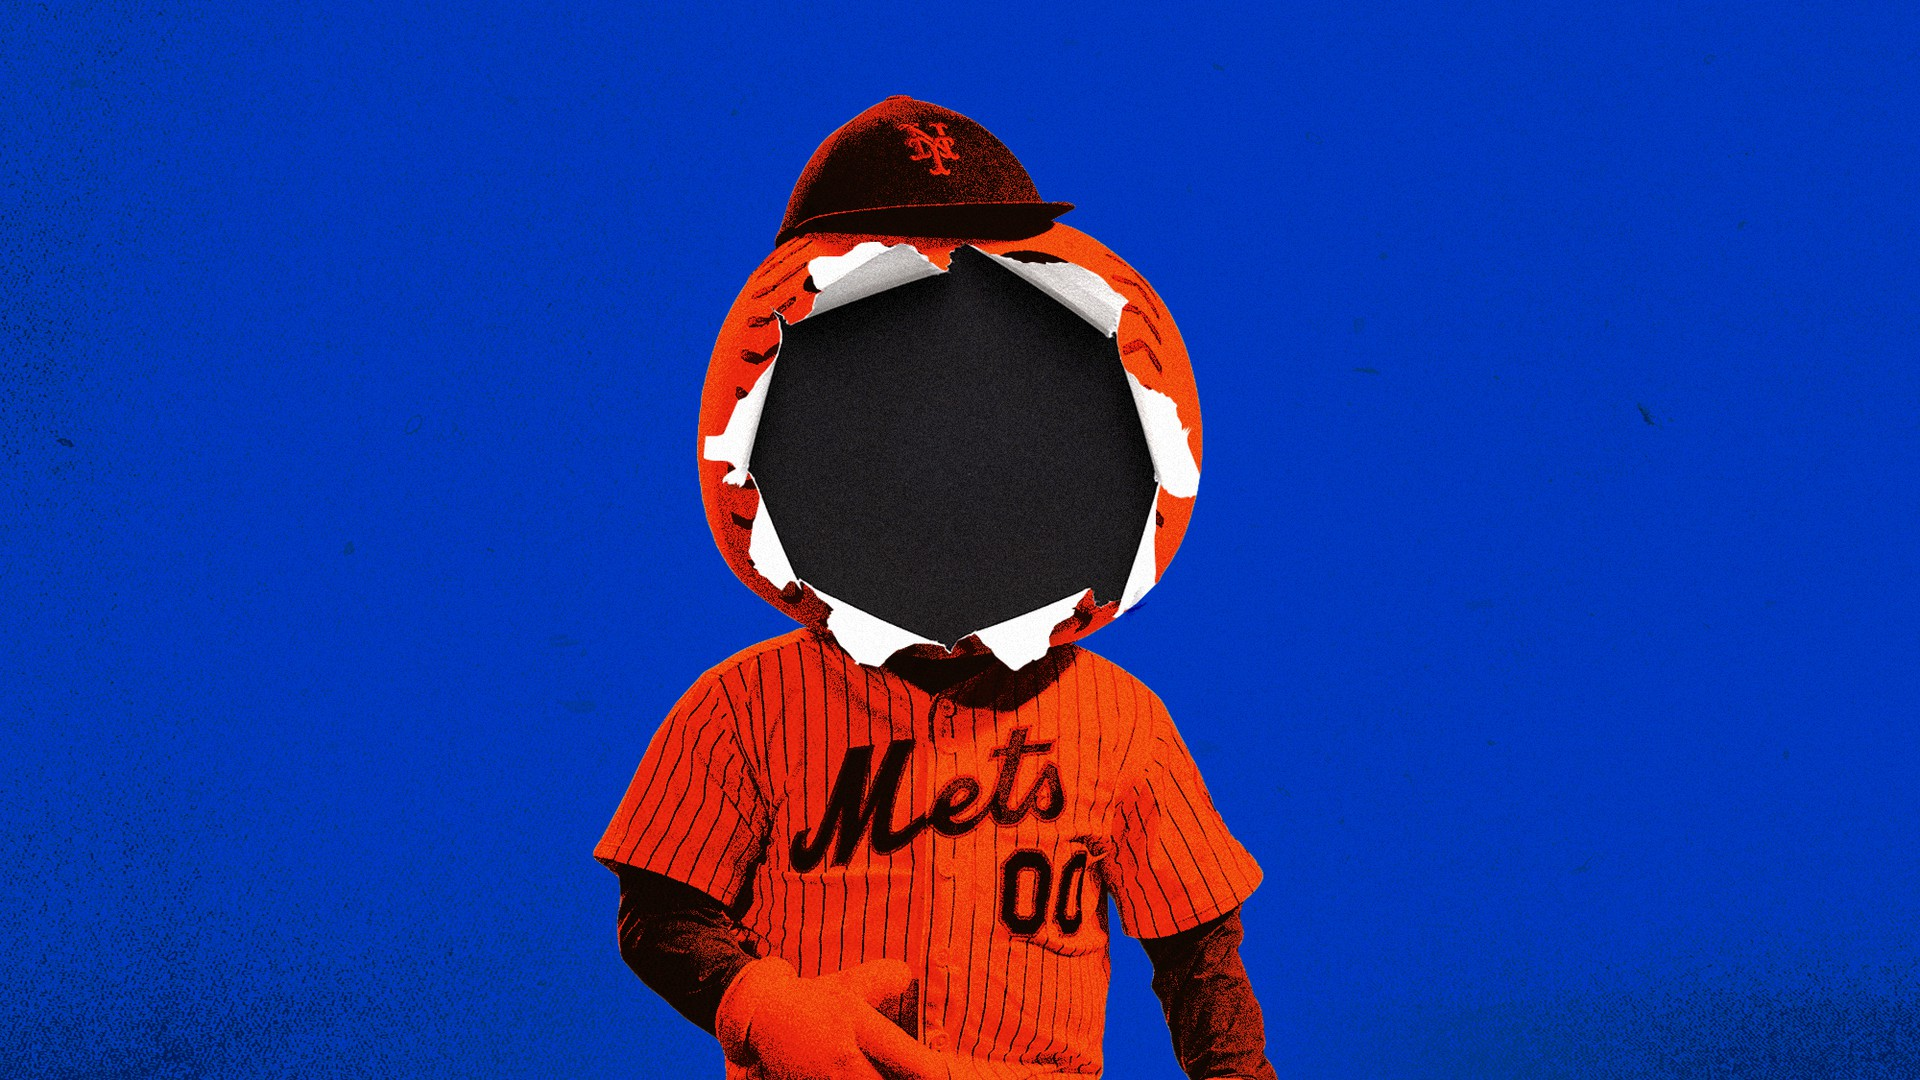 An illustration of Mr. Met with a baseball-shaped hole through his face